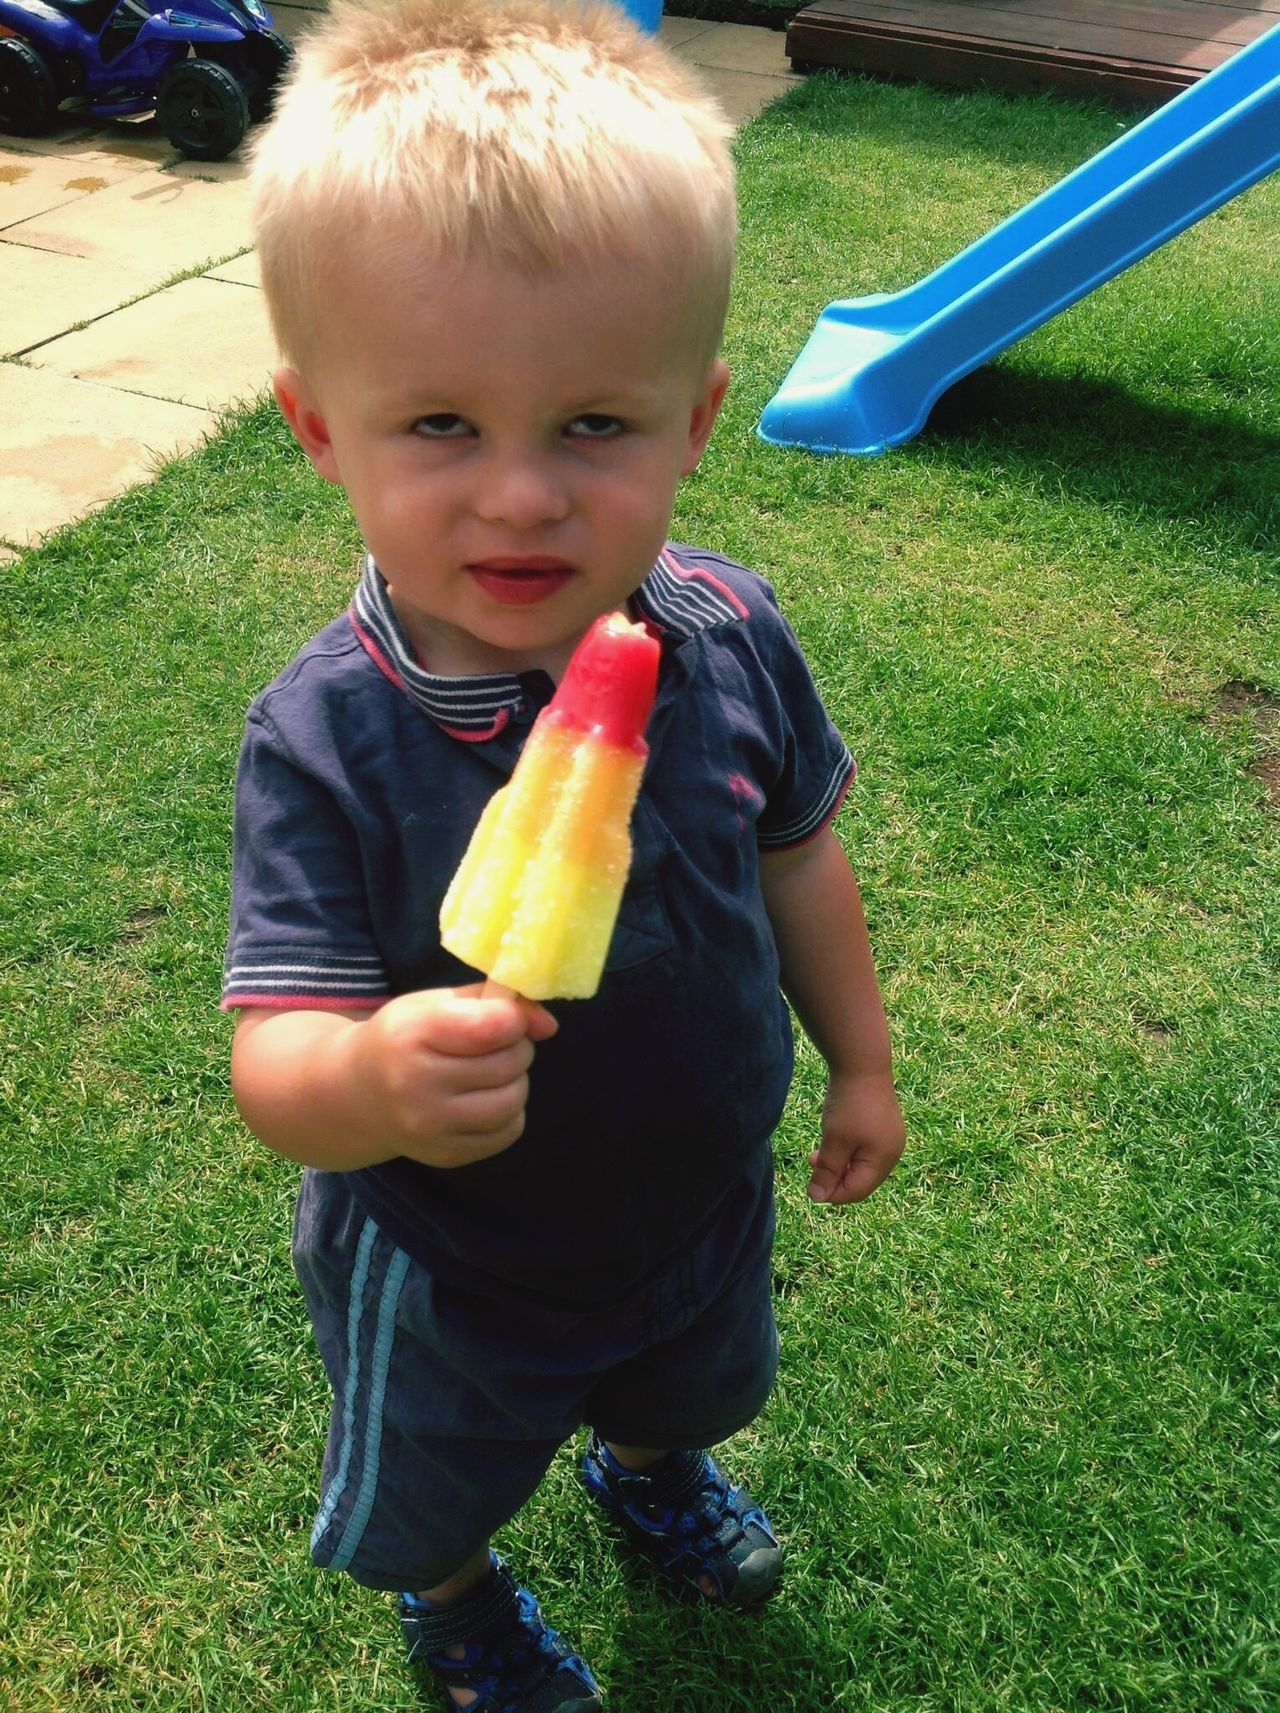 Frozen Food Food And Drink Eating Flavored Ice Childhood Grass One Person Ice Cream Sweet Food Holding Innocence Elementary Age Front View Summer Outdoors Indulgence Blond Hair Leisure Activity Refreshment Real People